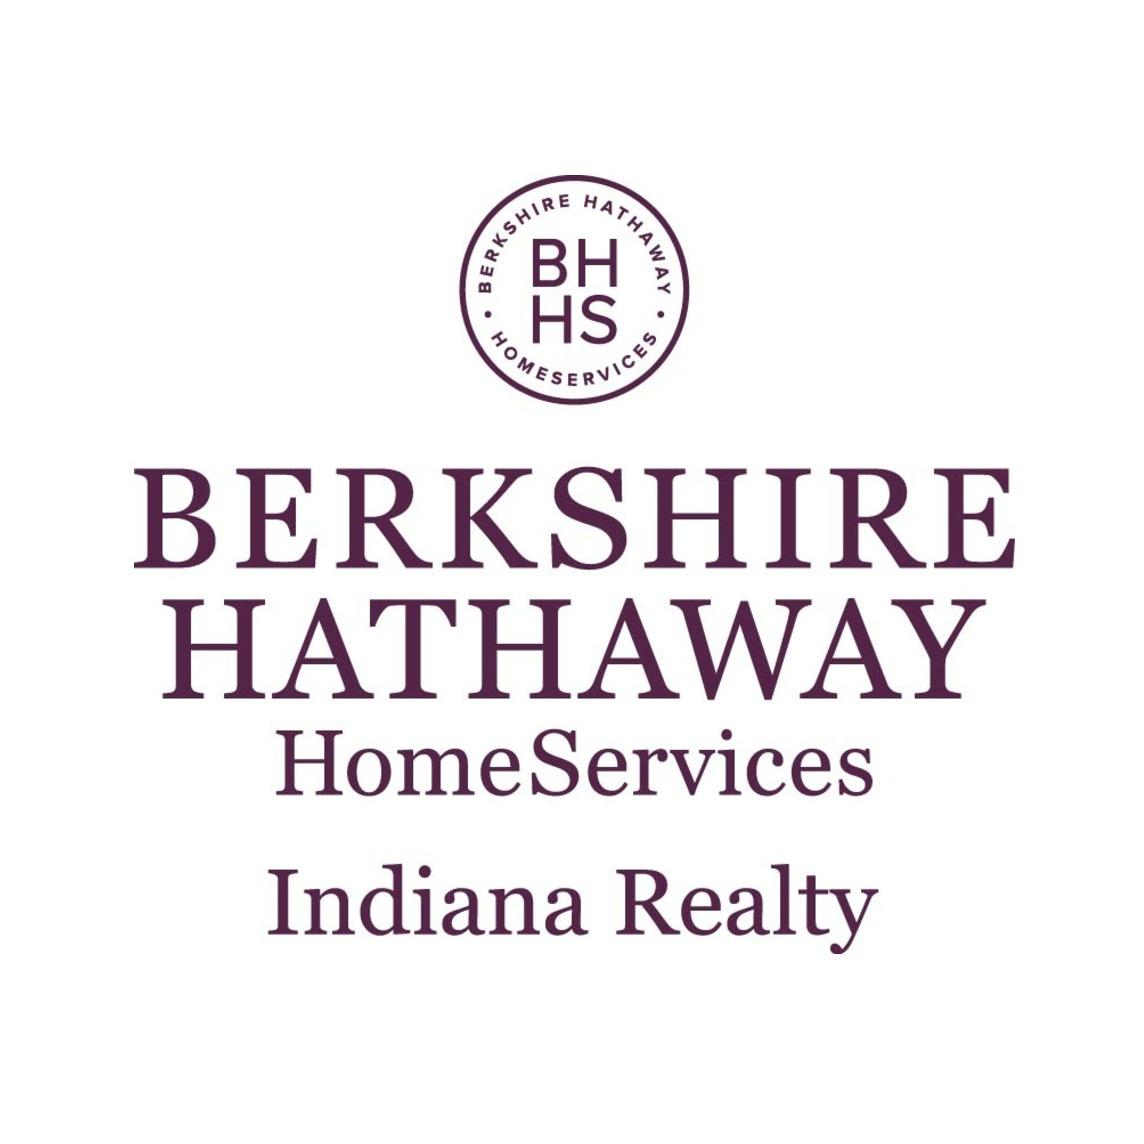 Donald Wilder | Berkshire Hathaway HomeServices Indiana Realty